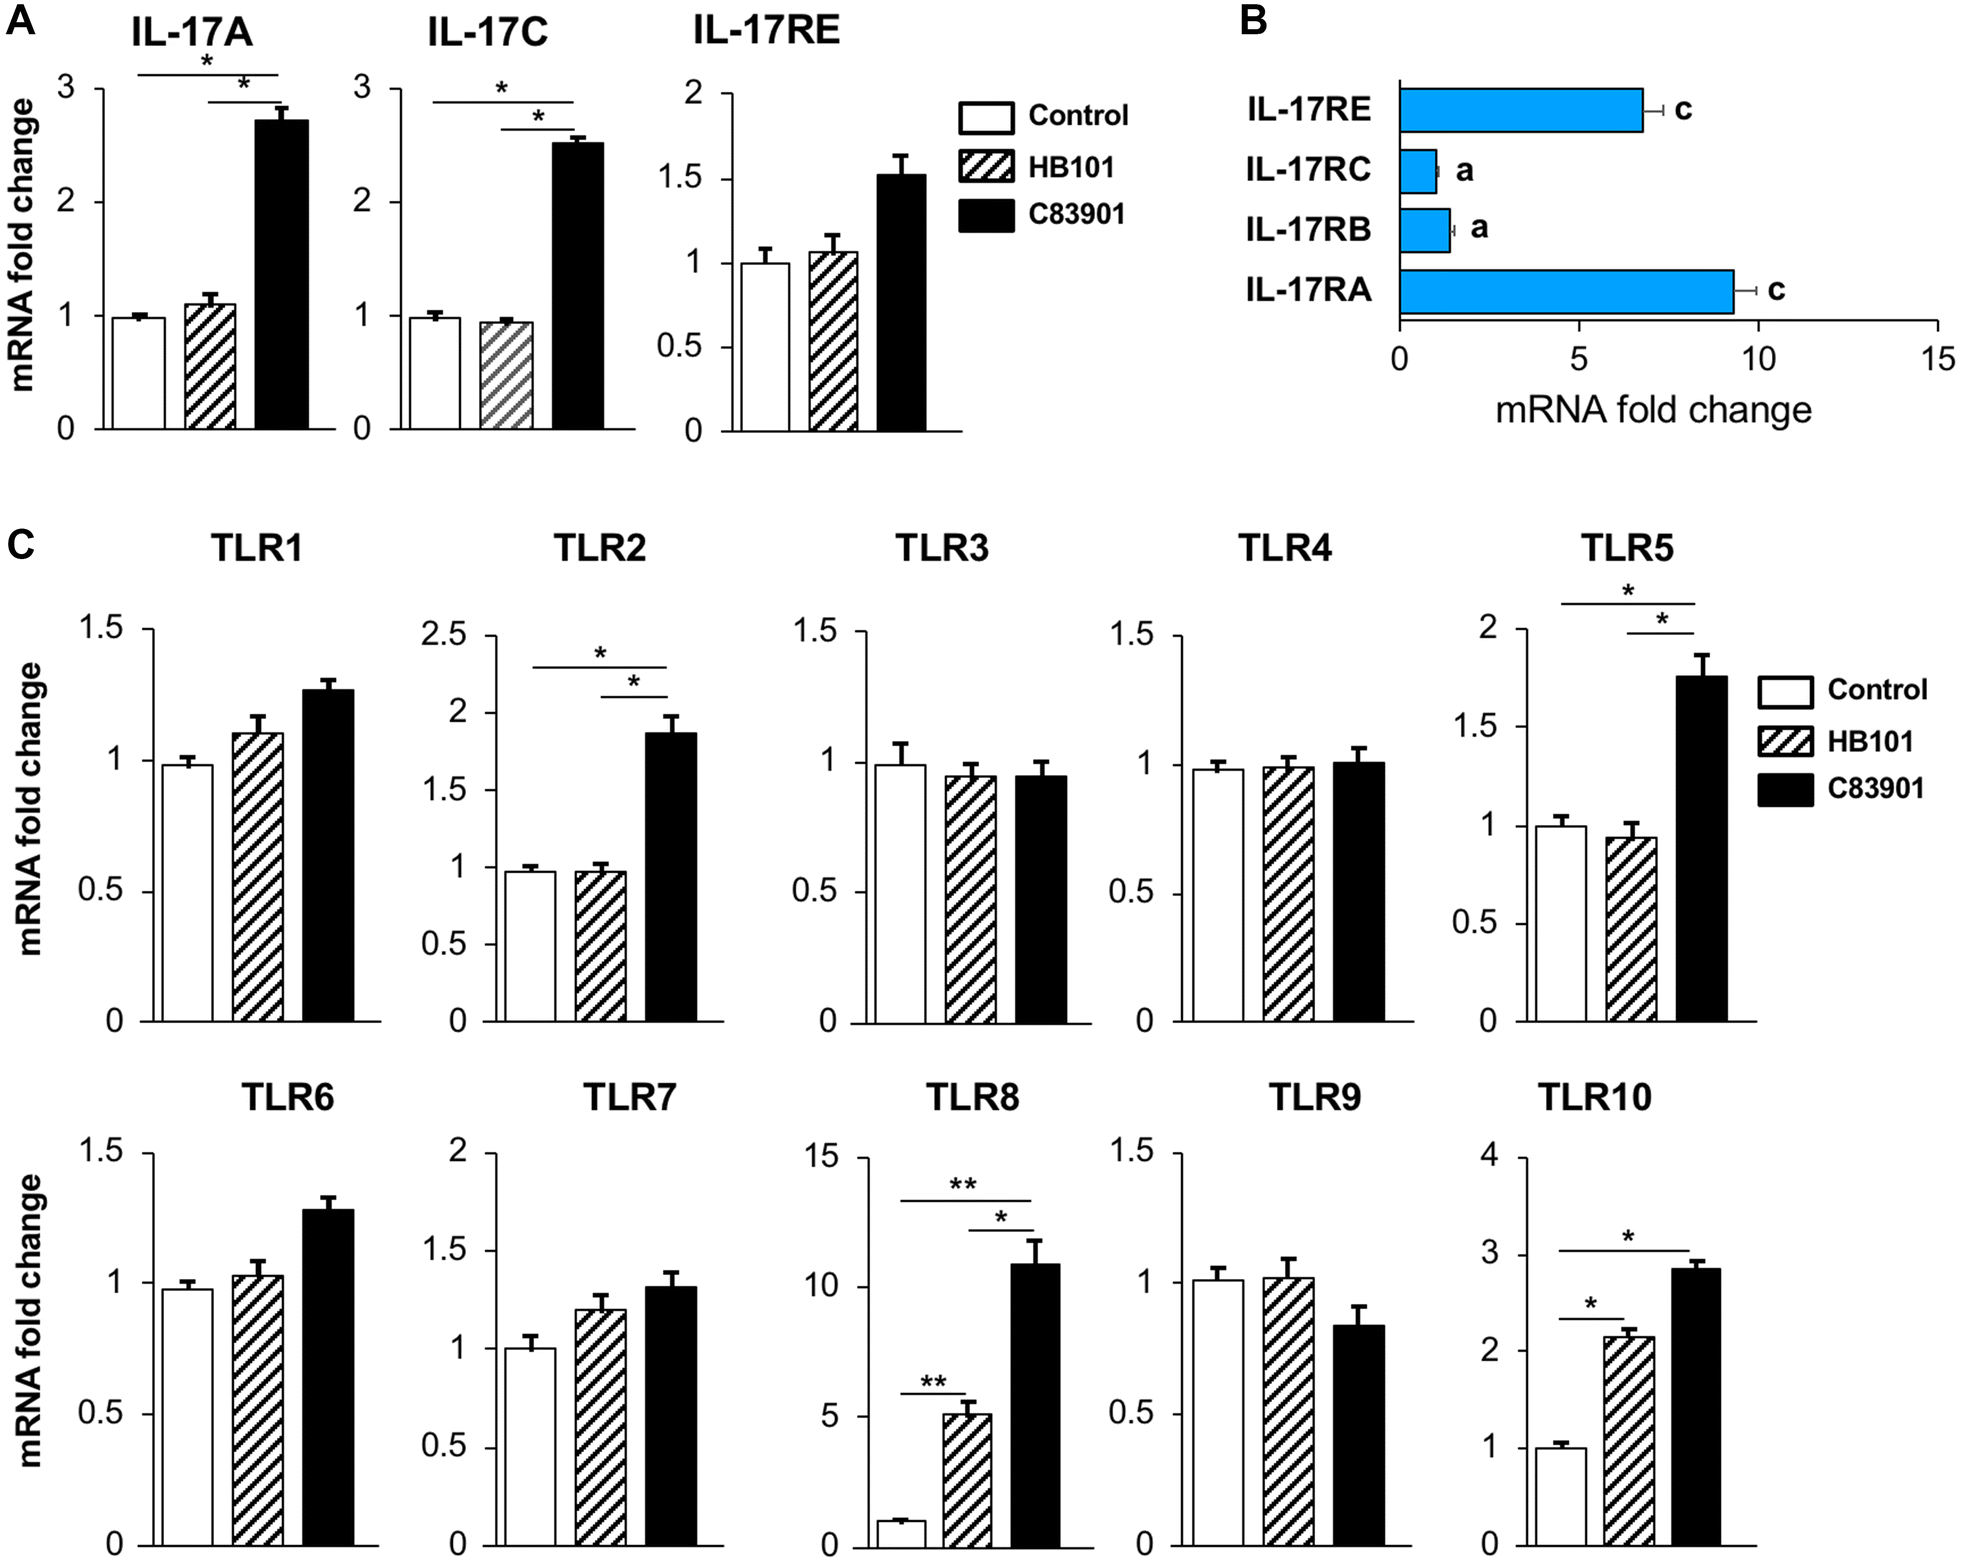 Toll-like receptor 5-mediated IL-17C expression in